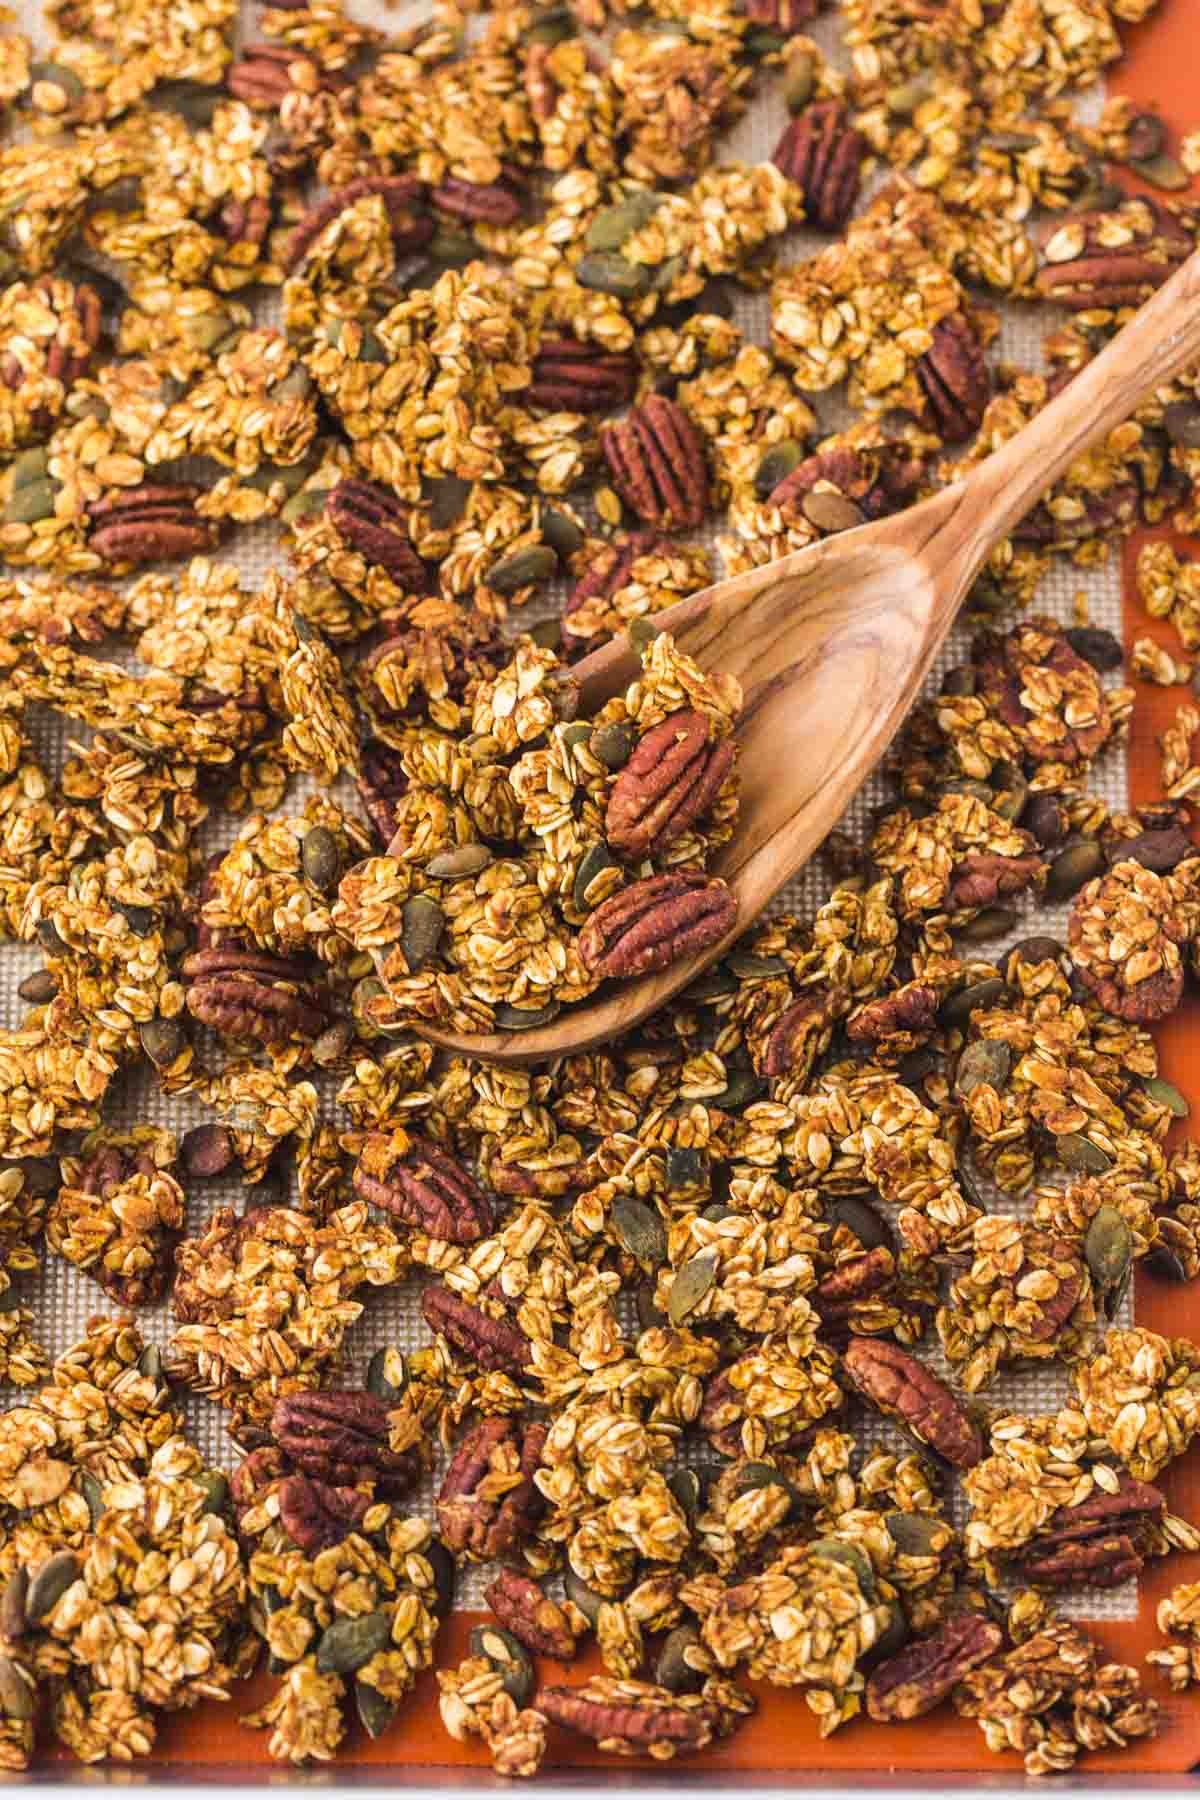 Baked granola on a baking sheet with a wooden spoon